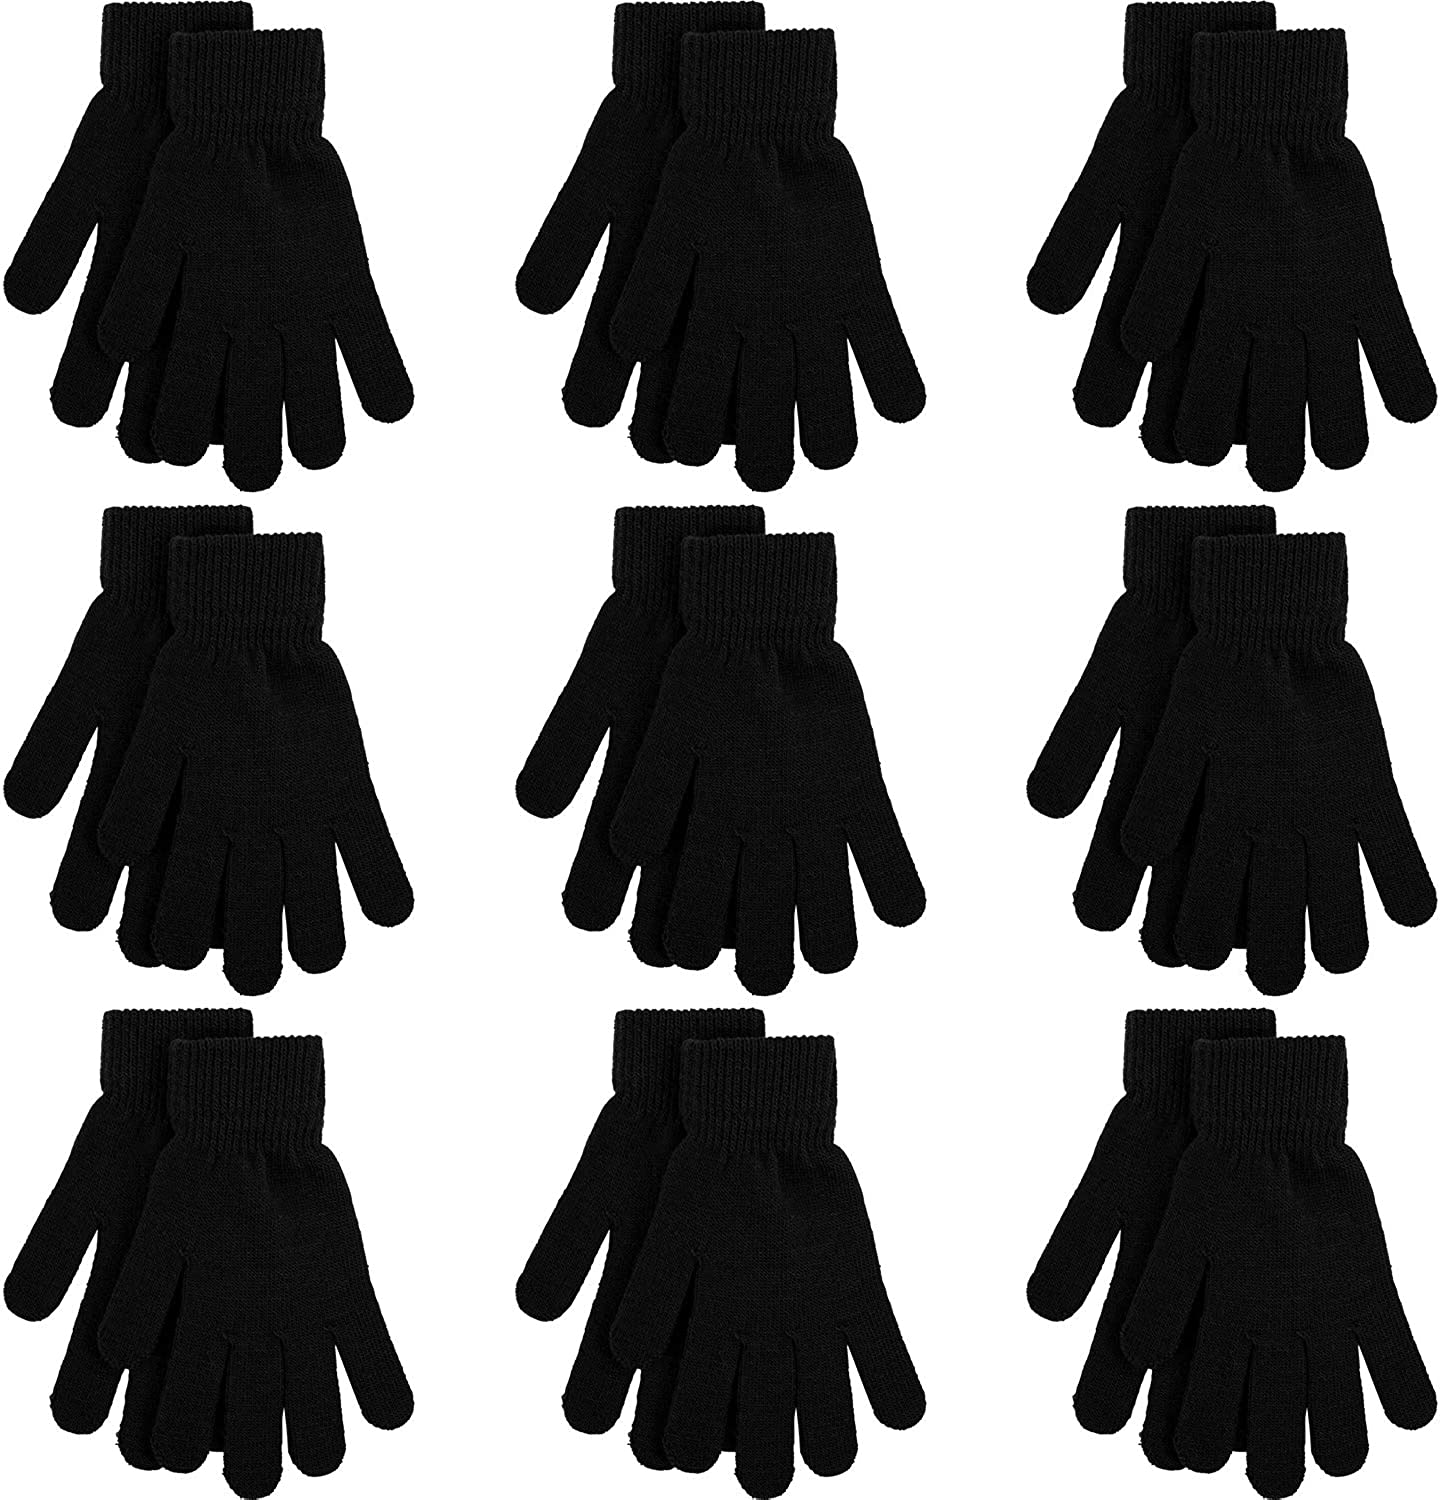 Cooraby 9 Pairs Winter Magic Gloves Adult Full Fingers Gloves Warm Stretchy Gloves for Men, Women or Teens